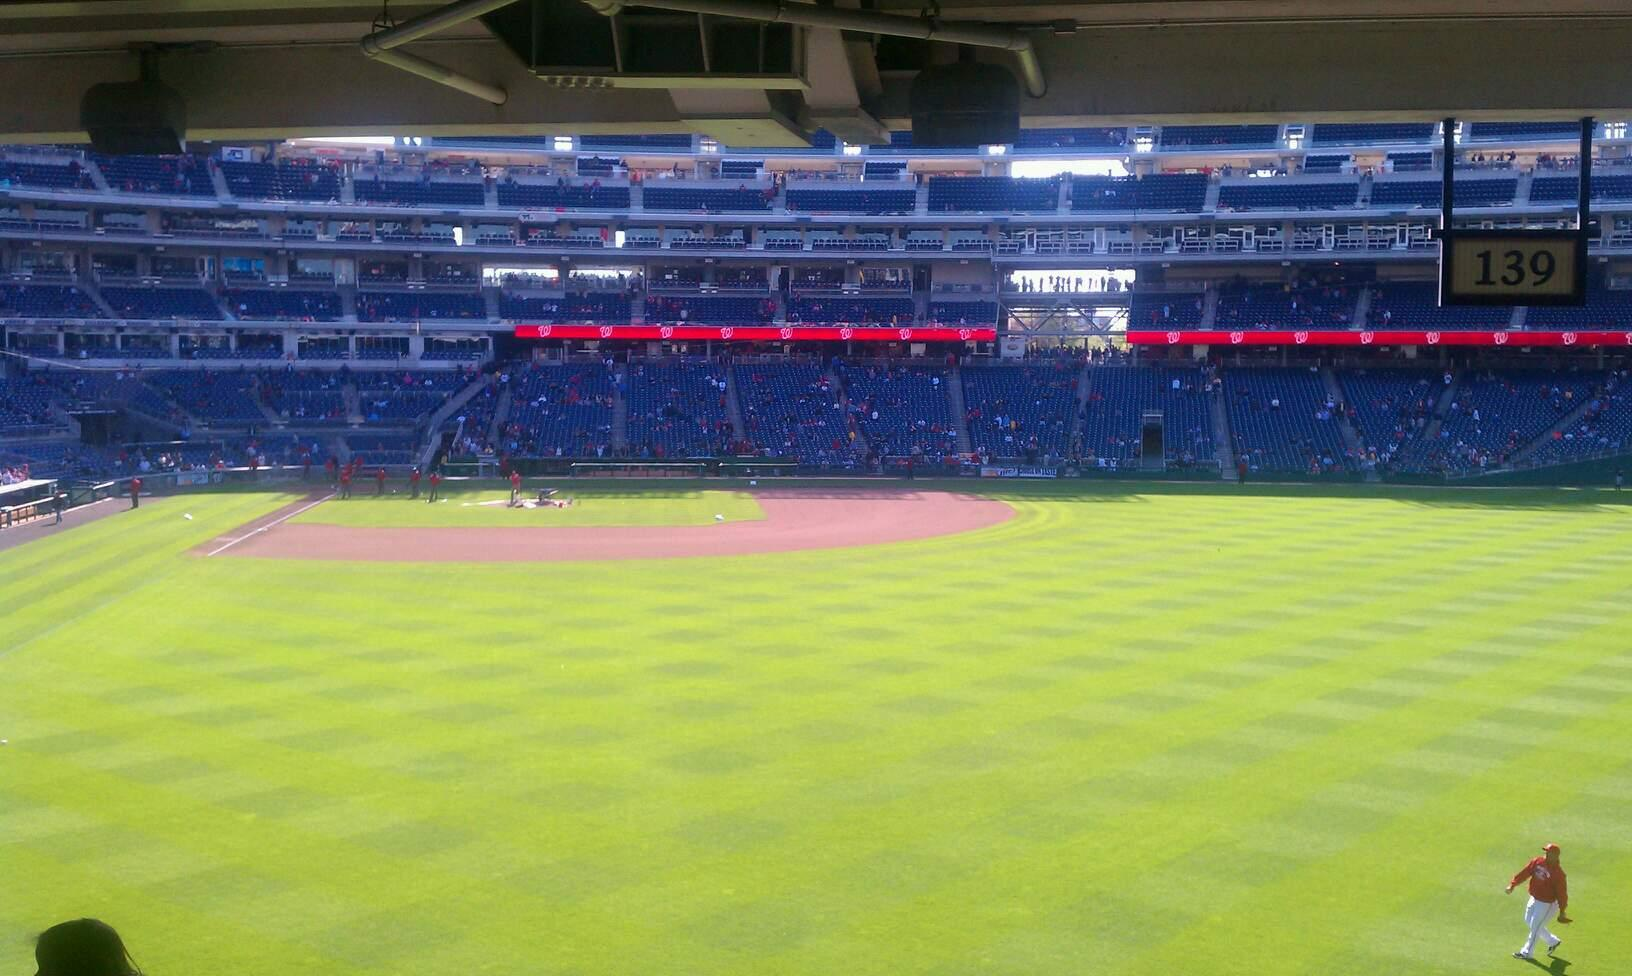 Nationals Park Section 138 Row W Seat 13